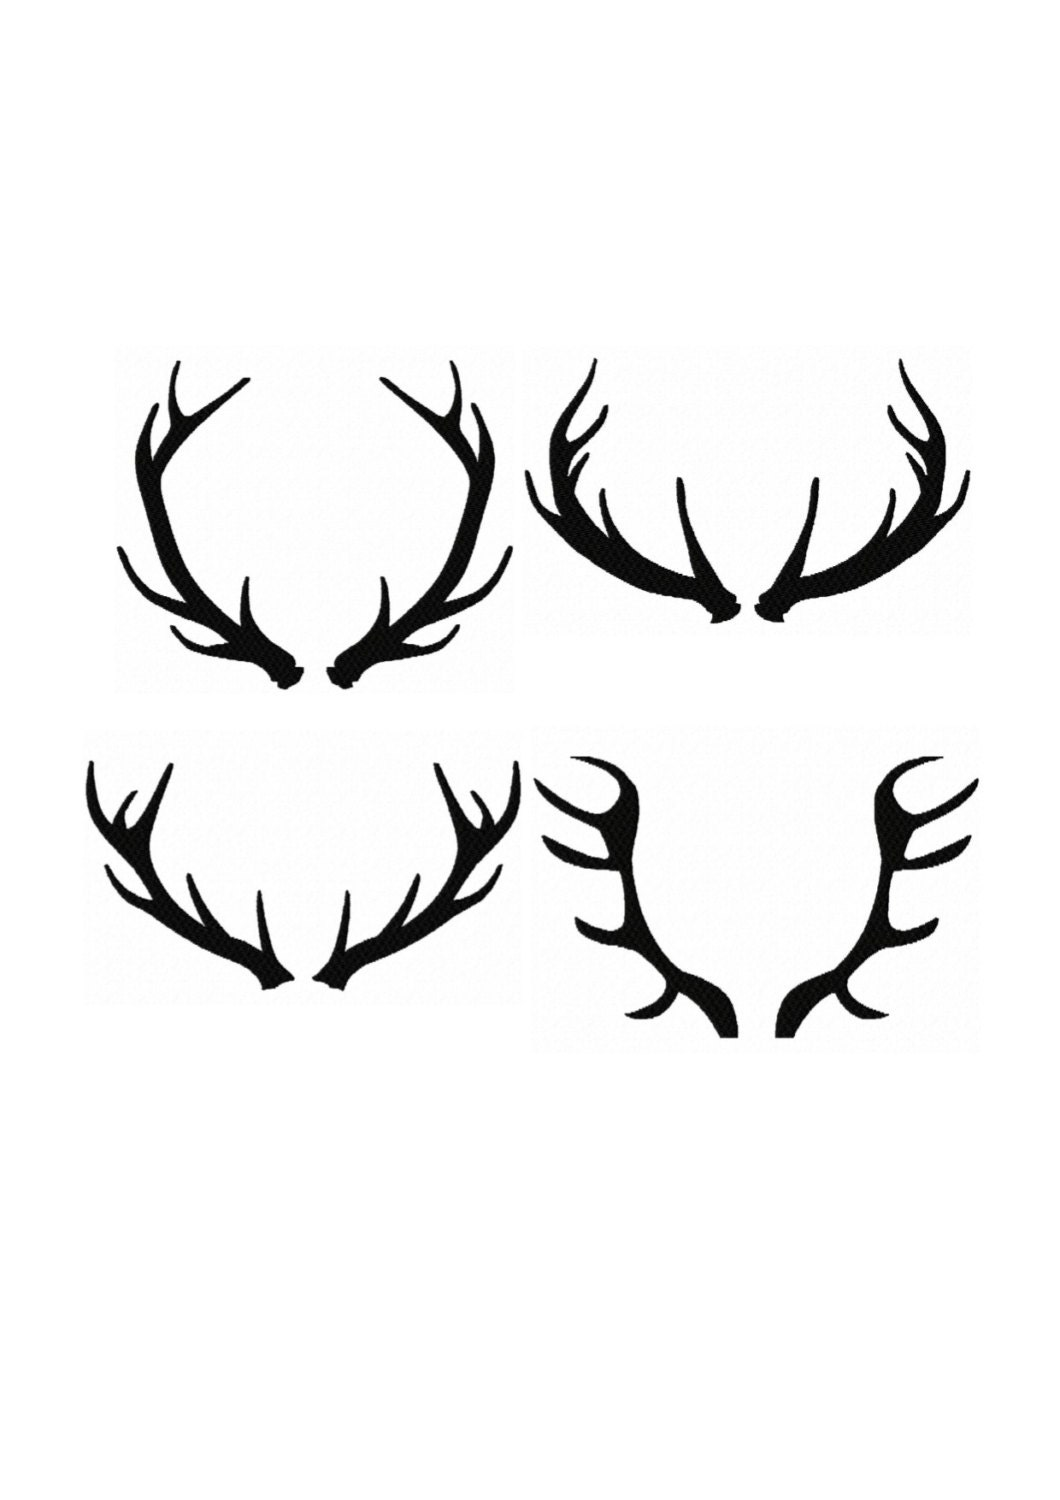 Set 4 Silhouette Buck Antlers...Instant Download...Pattern